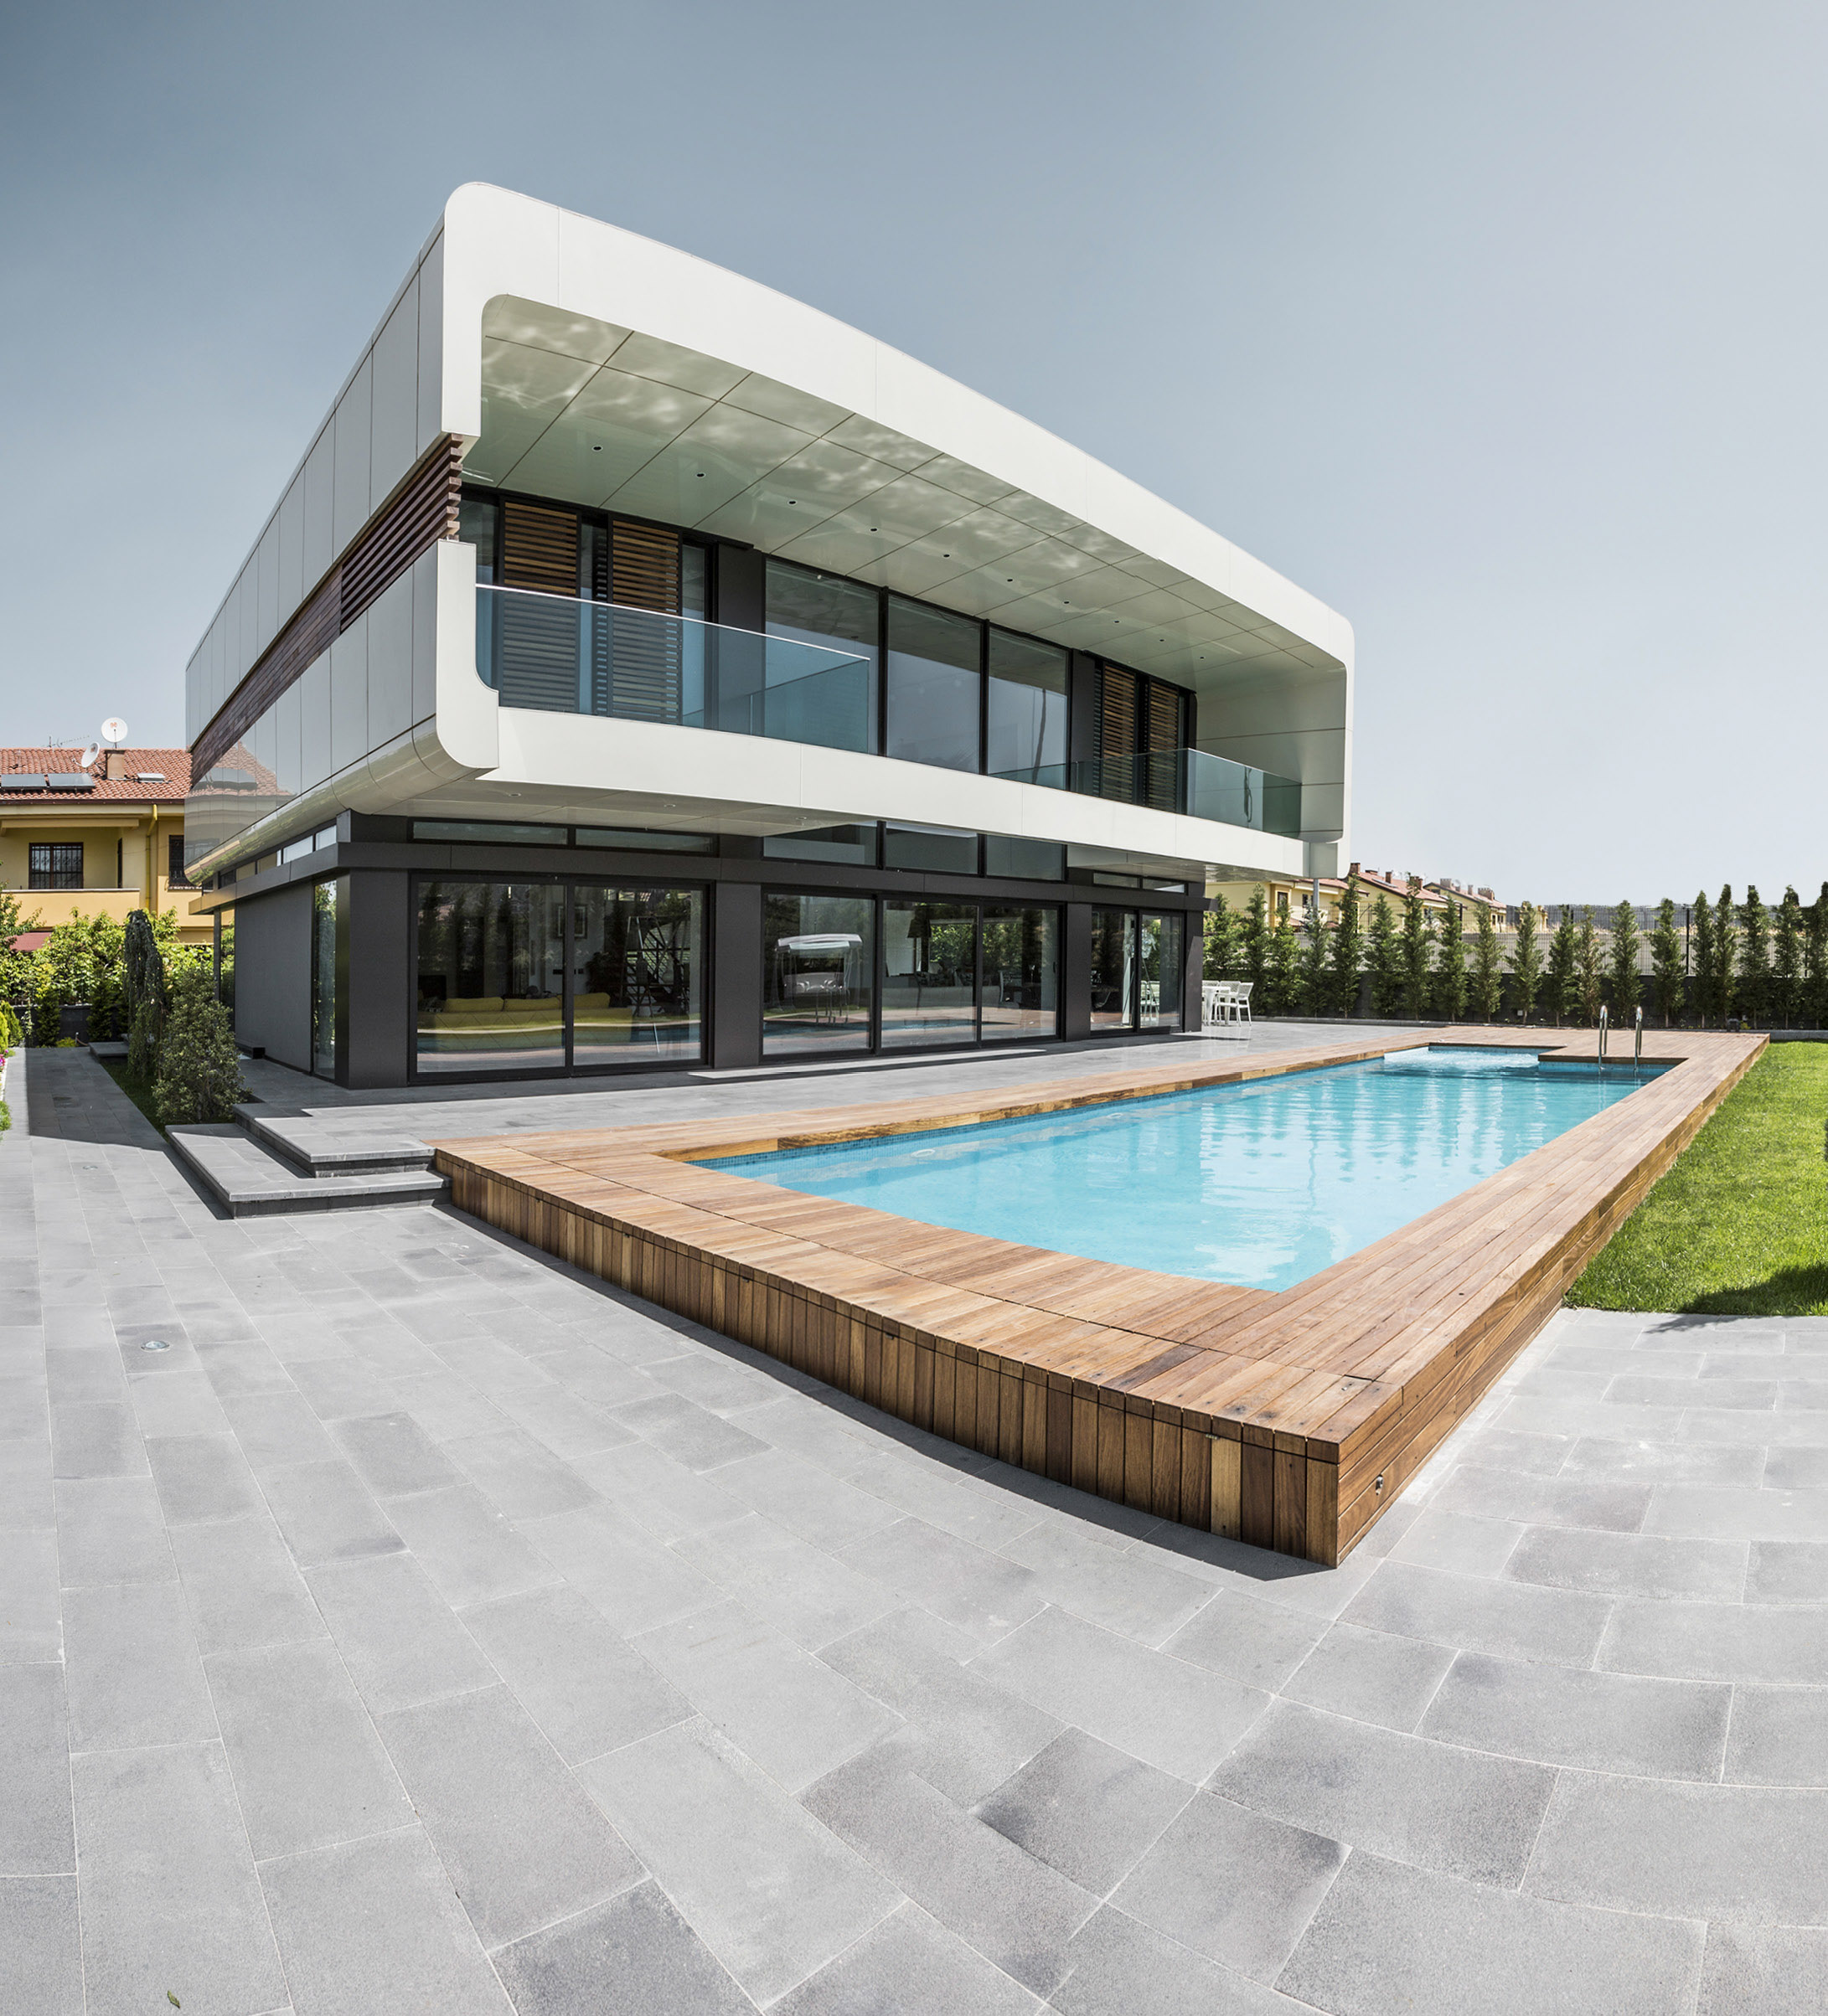 BAHADIR KUL ARCHITECTS